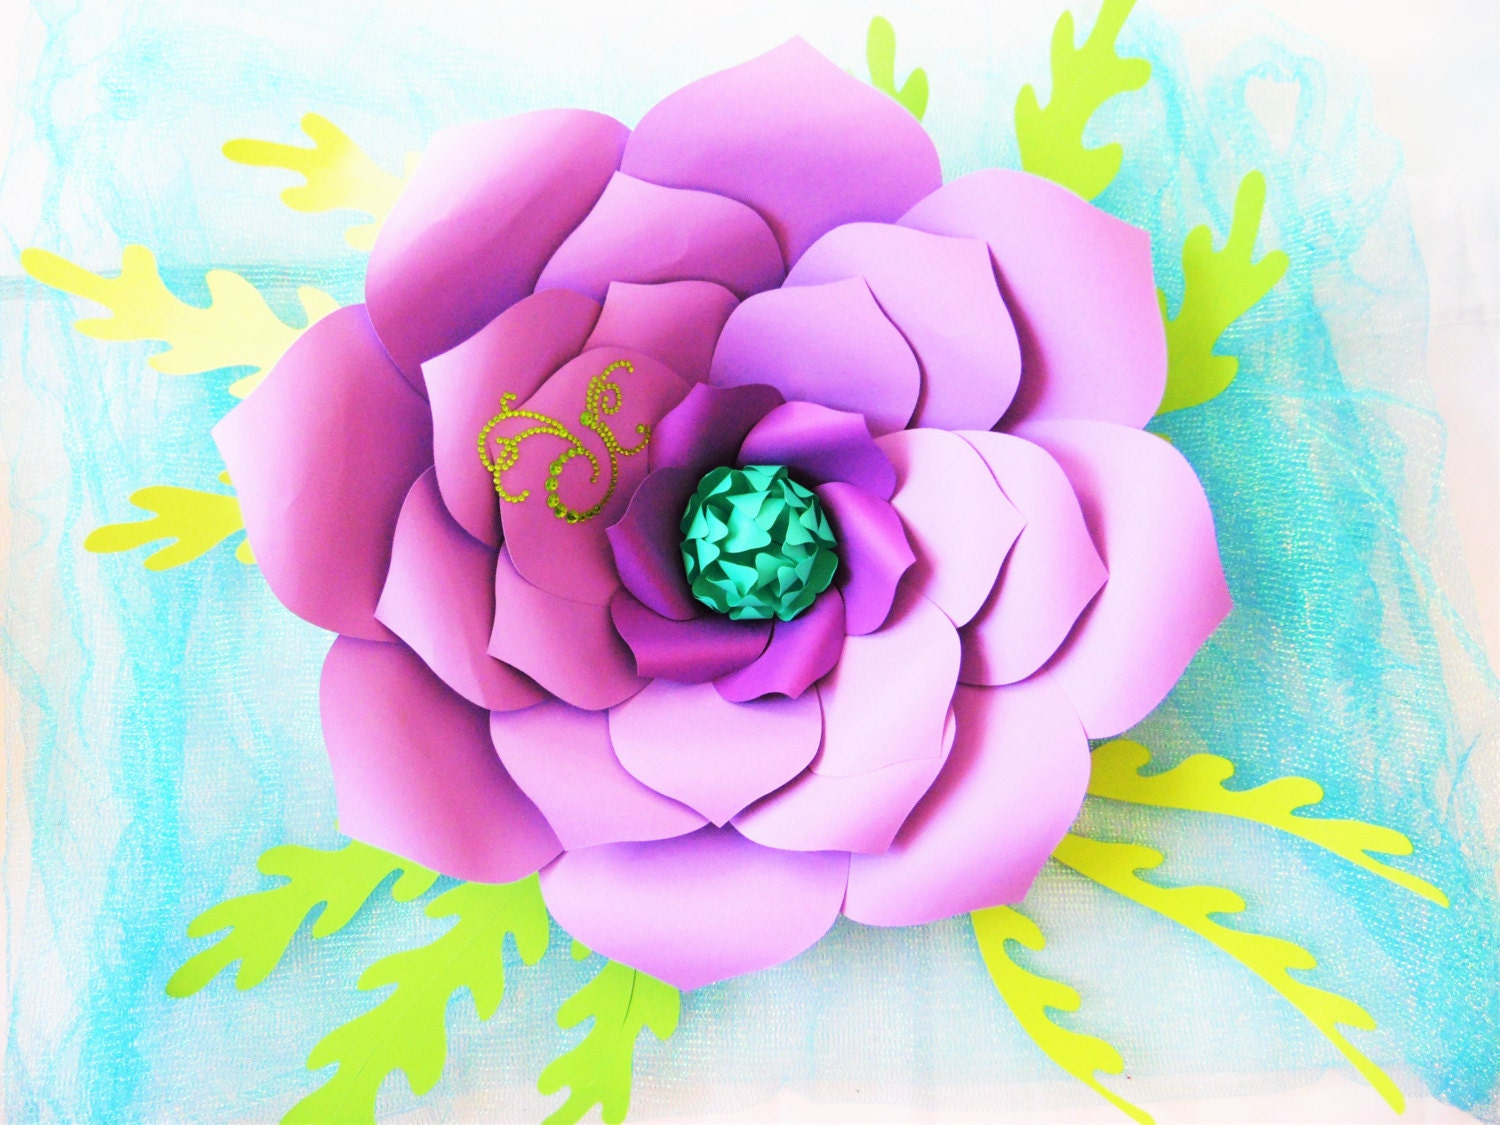 Diy giant paper flower templates large paper flowers paper flower diy giant paper flower templates large paper flowers paper flower kit svg giant flower cut files paper flower tutorial mightylinksfo